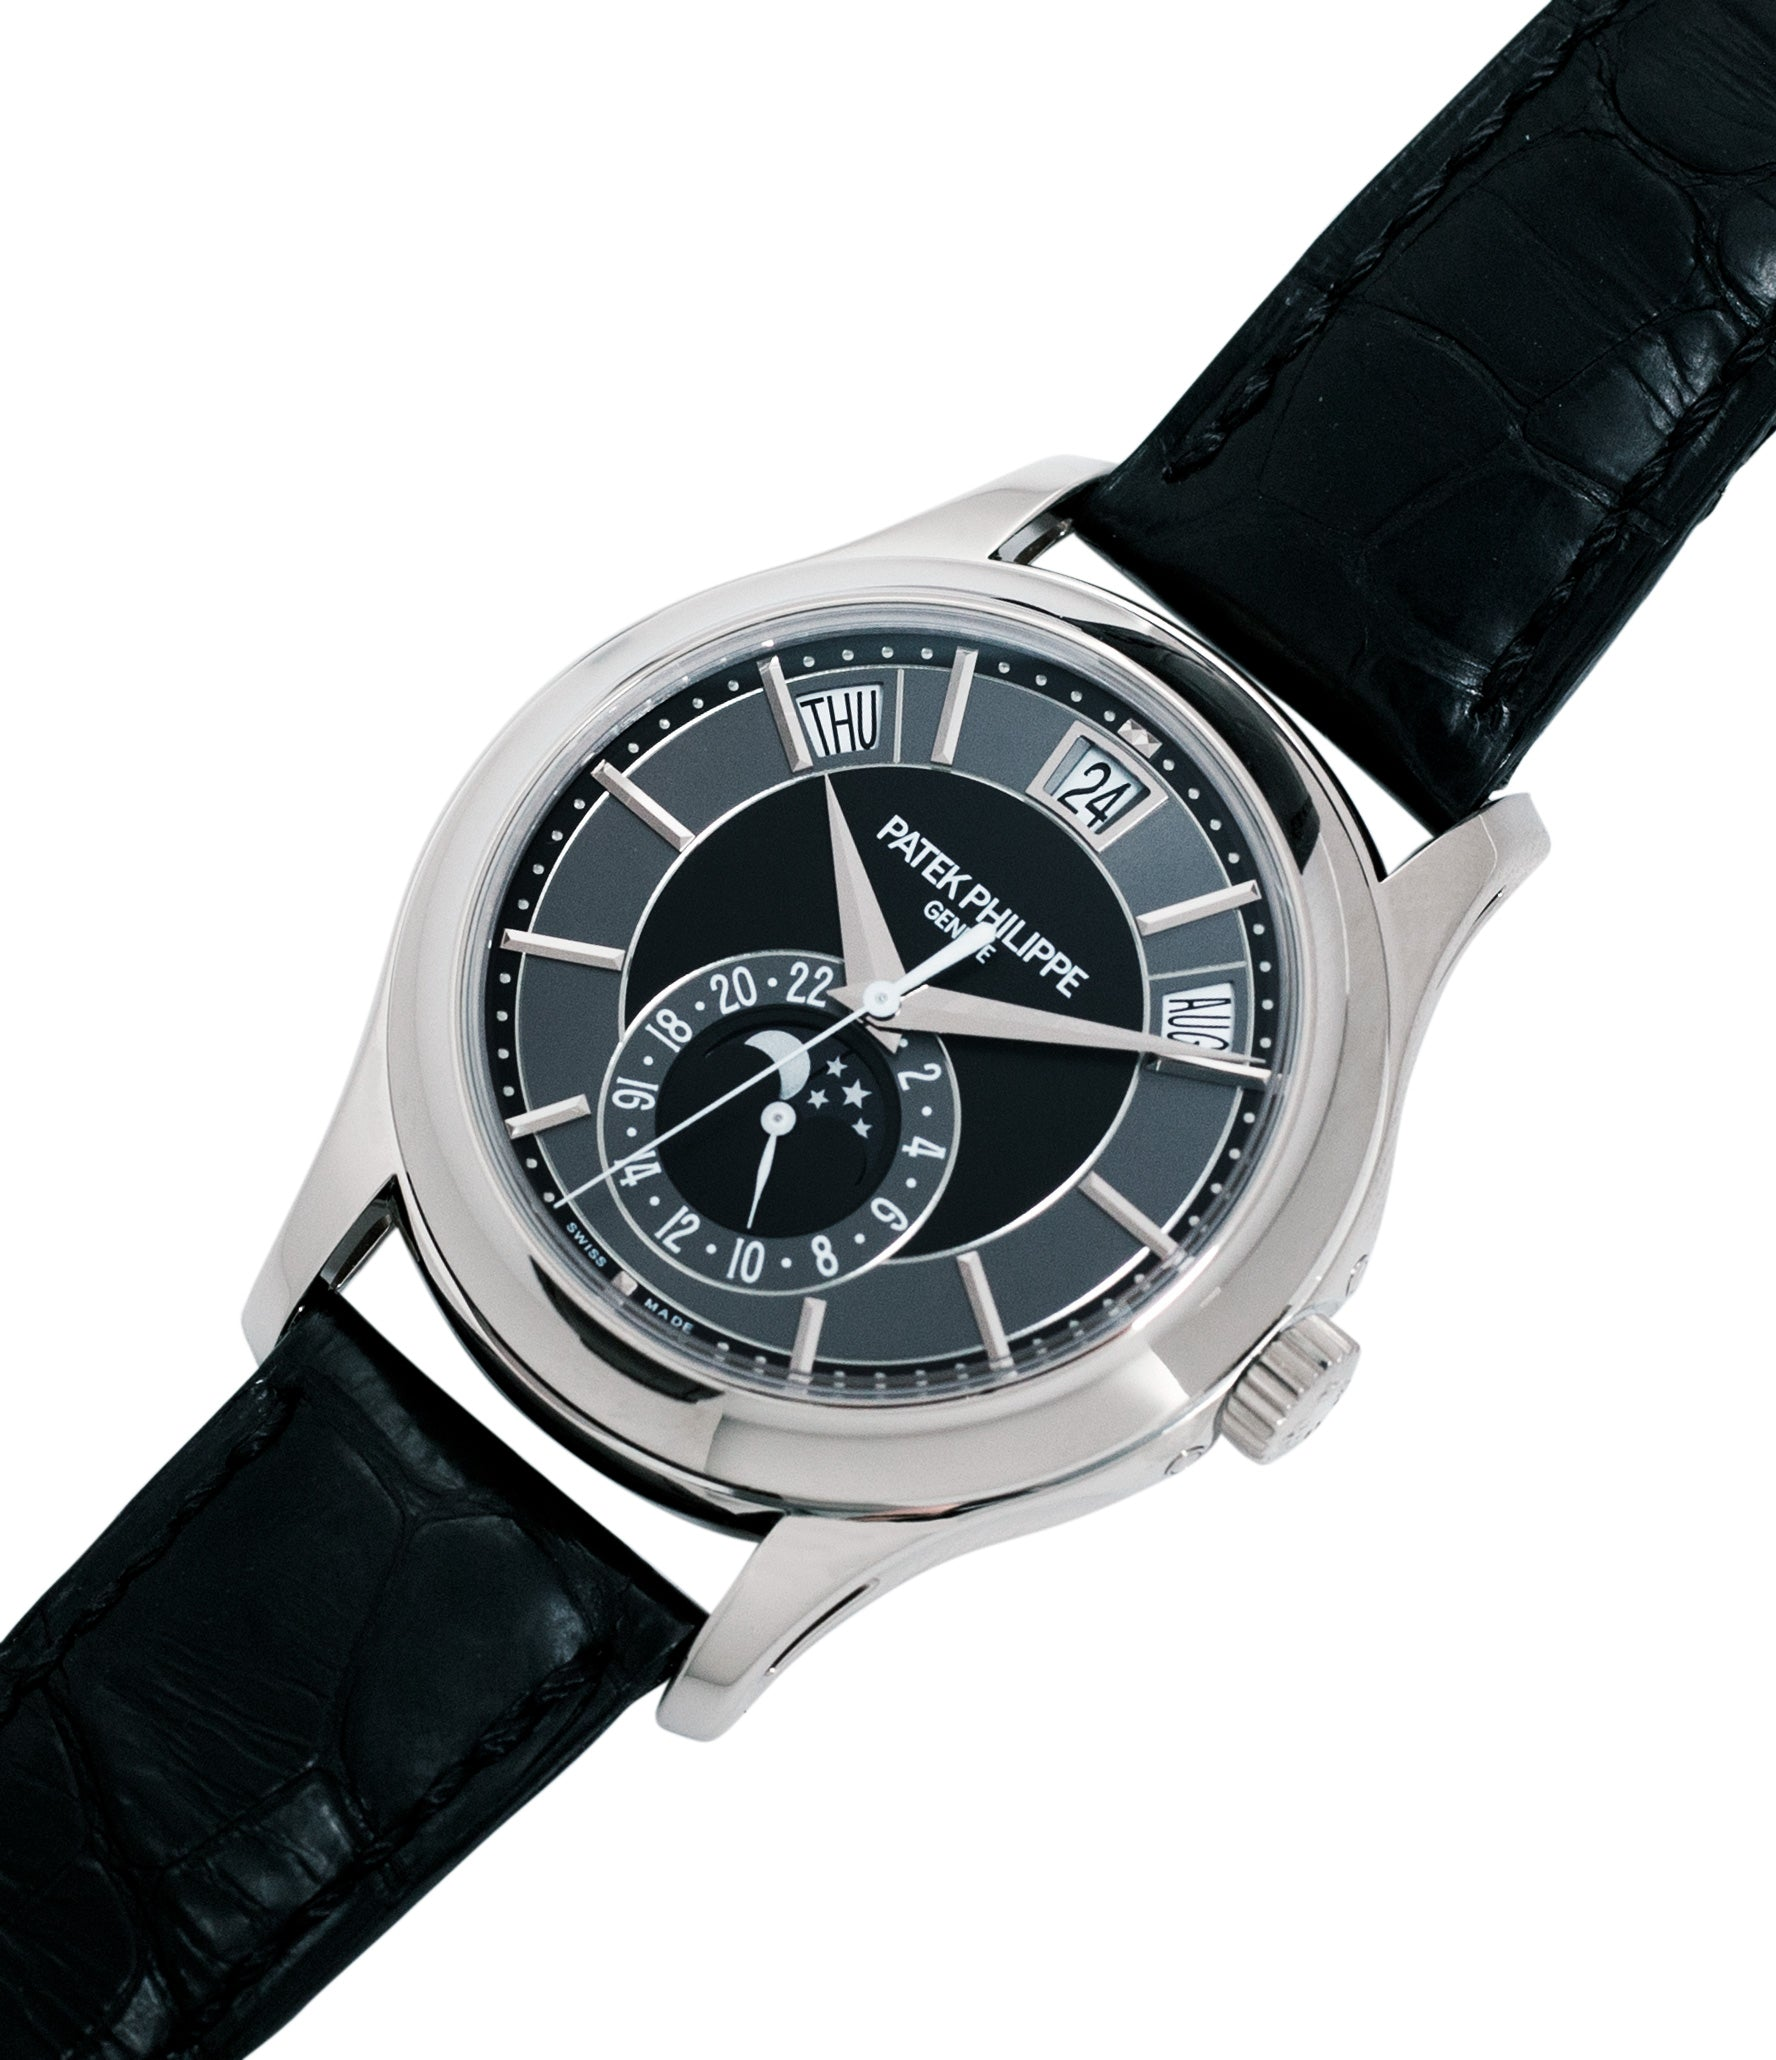 selling Patek Philippe Annual Calendar Moonphase 5205G-010 white gold watch online at A Collected Man London specialist retailer of rare watches UK